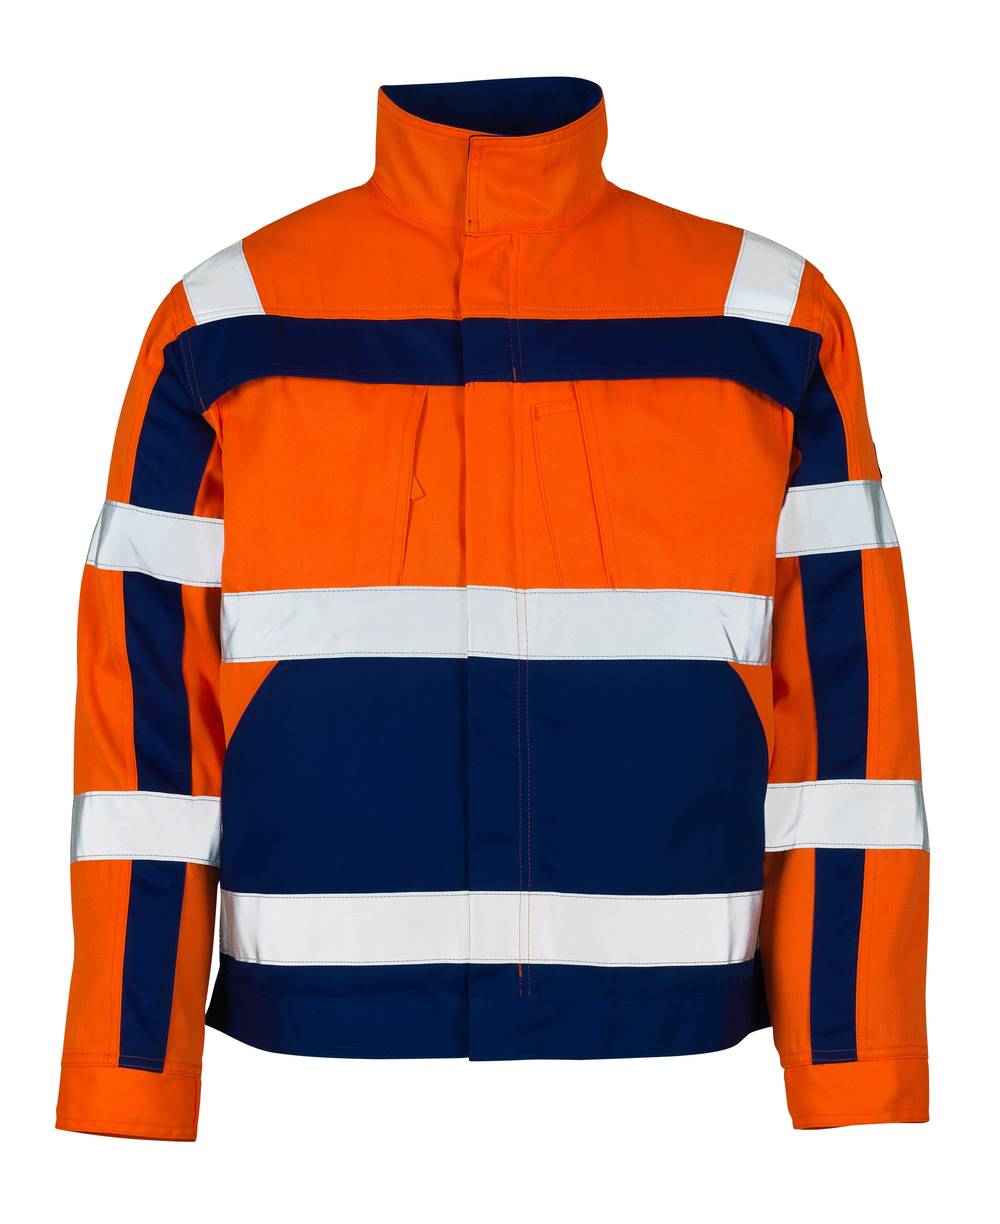 MASCOT CAMETA WORK JACKET Orange